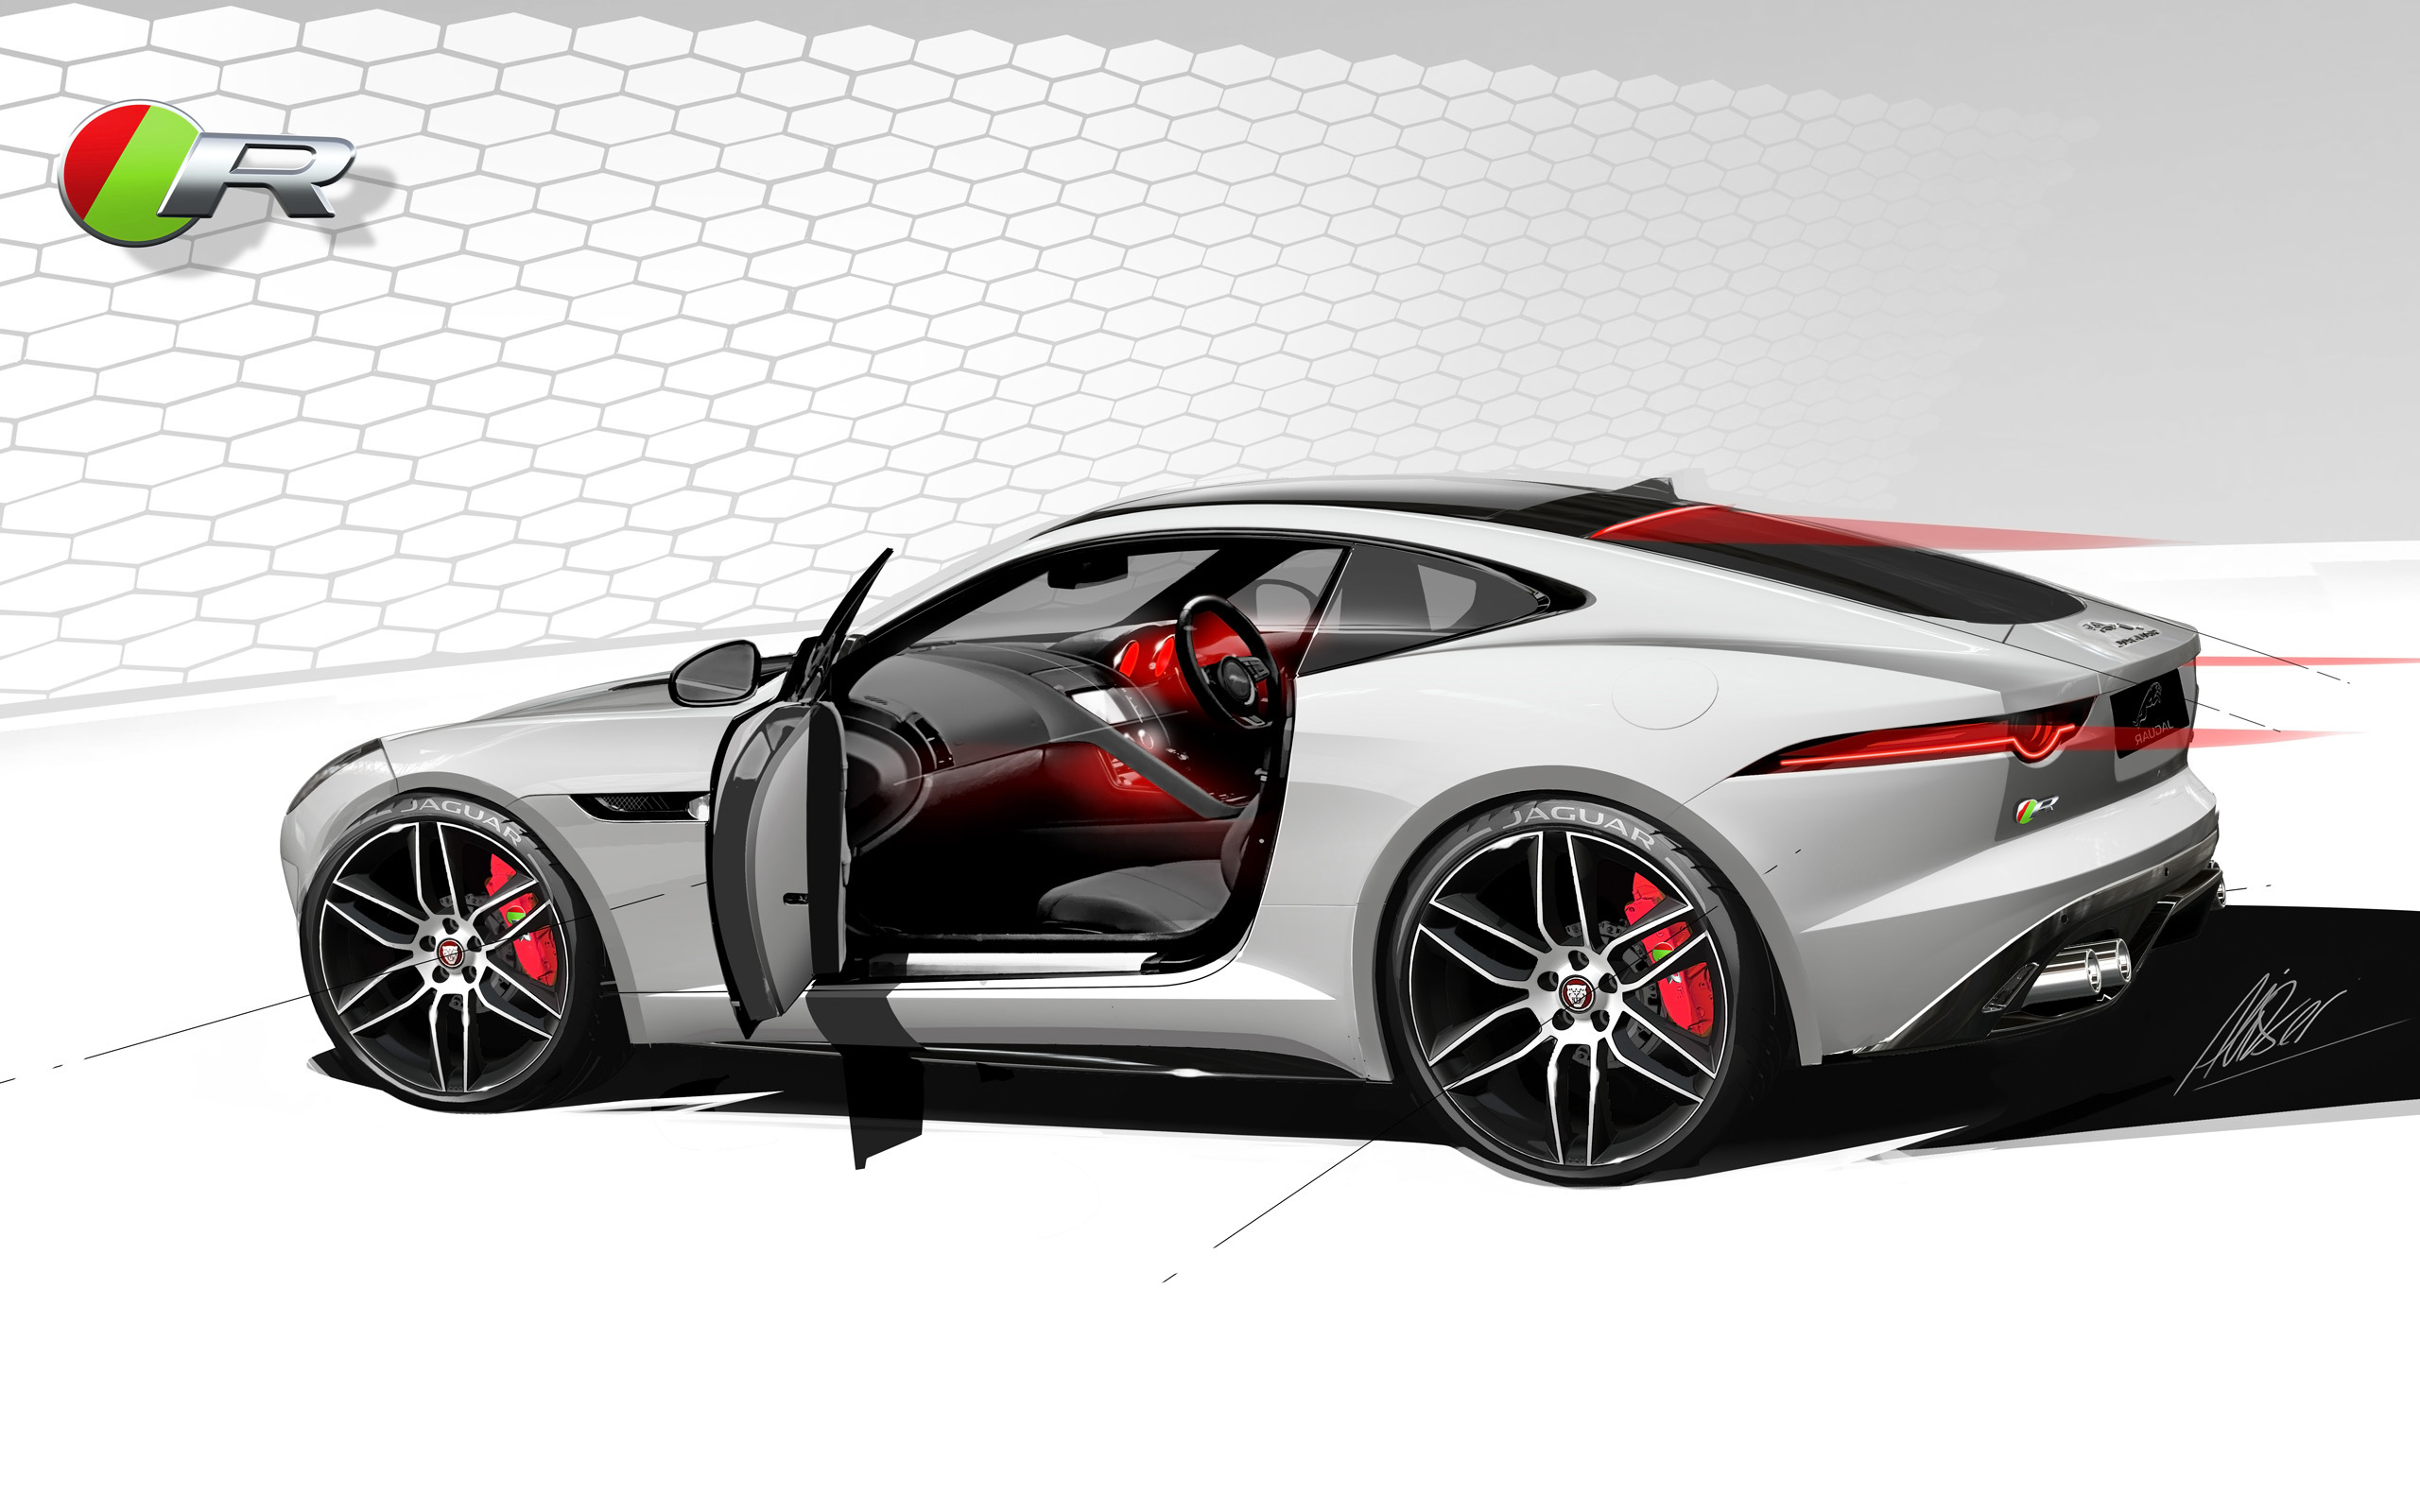 2014 Jaguar F Type R Coupe f wallpaper background 2560x1600